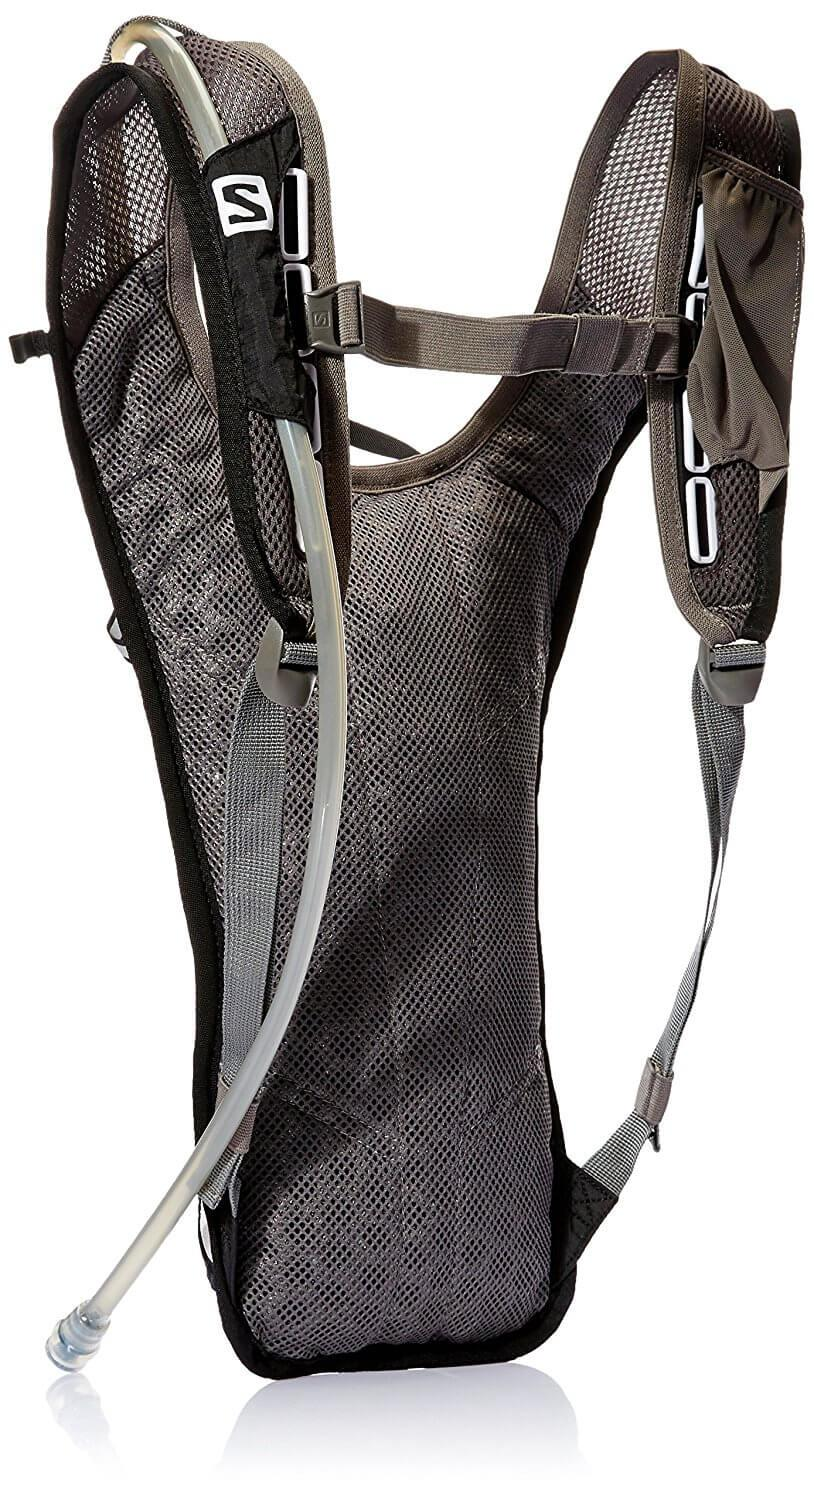 The Salomon Agile 2 Hydration Pack comes with a 1.5L hydration bladder